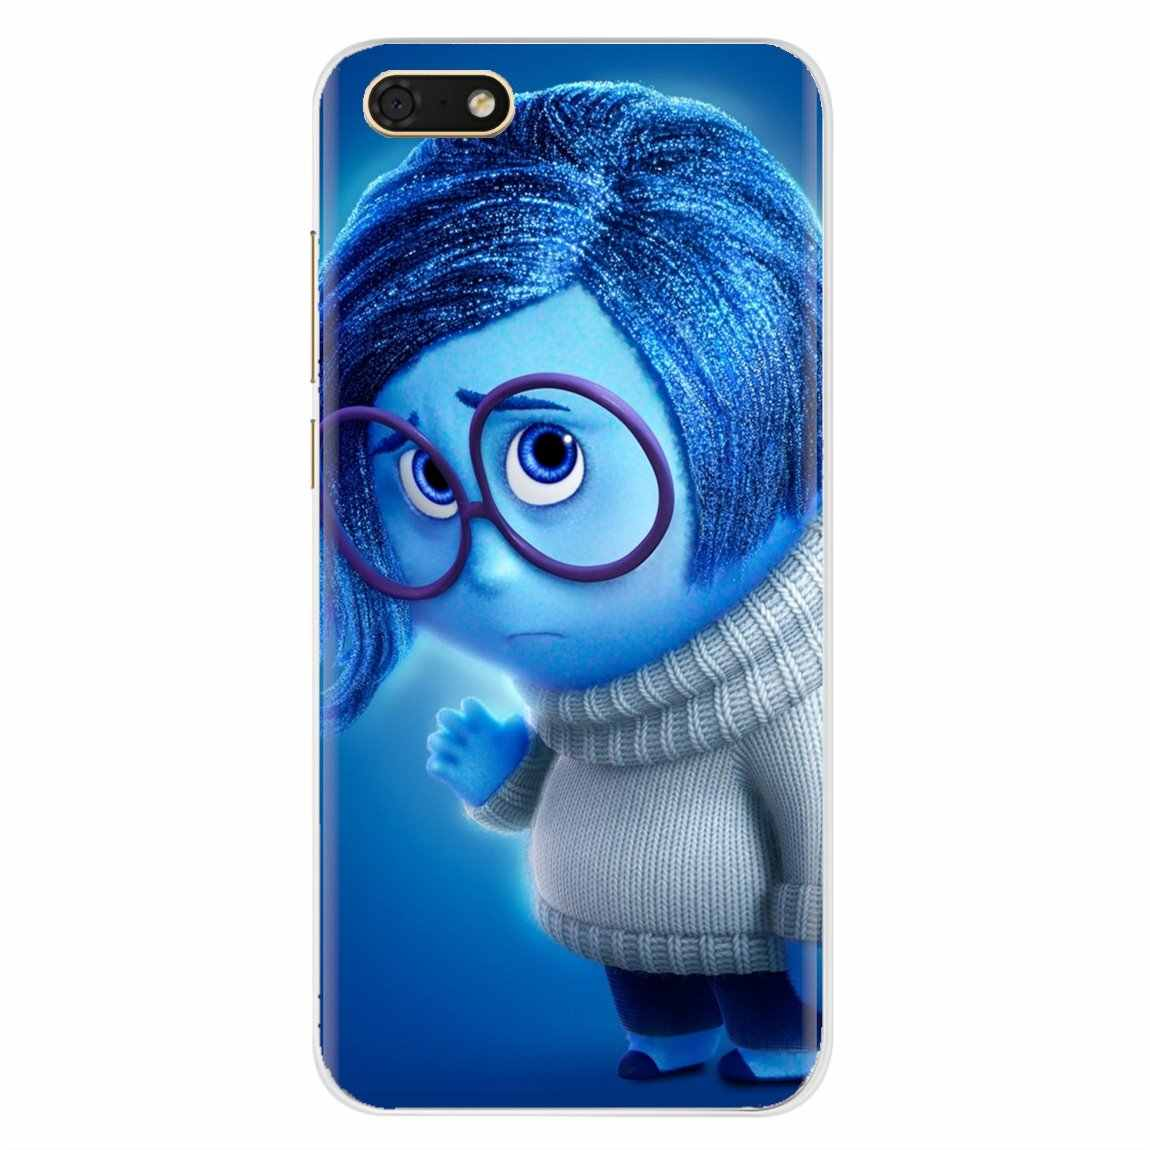 Movie Inside Wallpaper For Samsung Galaxy S6 Edge S10 Lite Plus Core Grand Prime Alpha J1 Mini Personalized Silicone Phone Case Fitted Cases Aliexpress